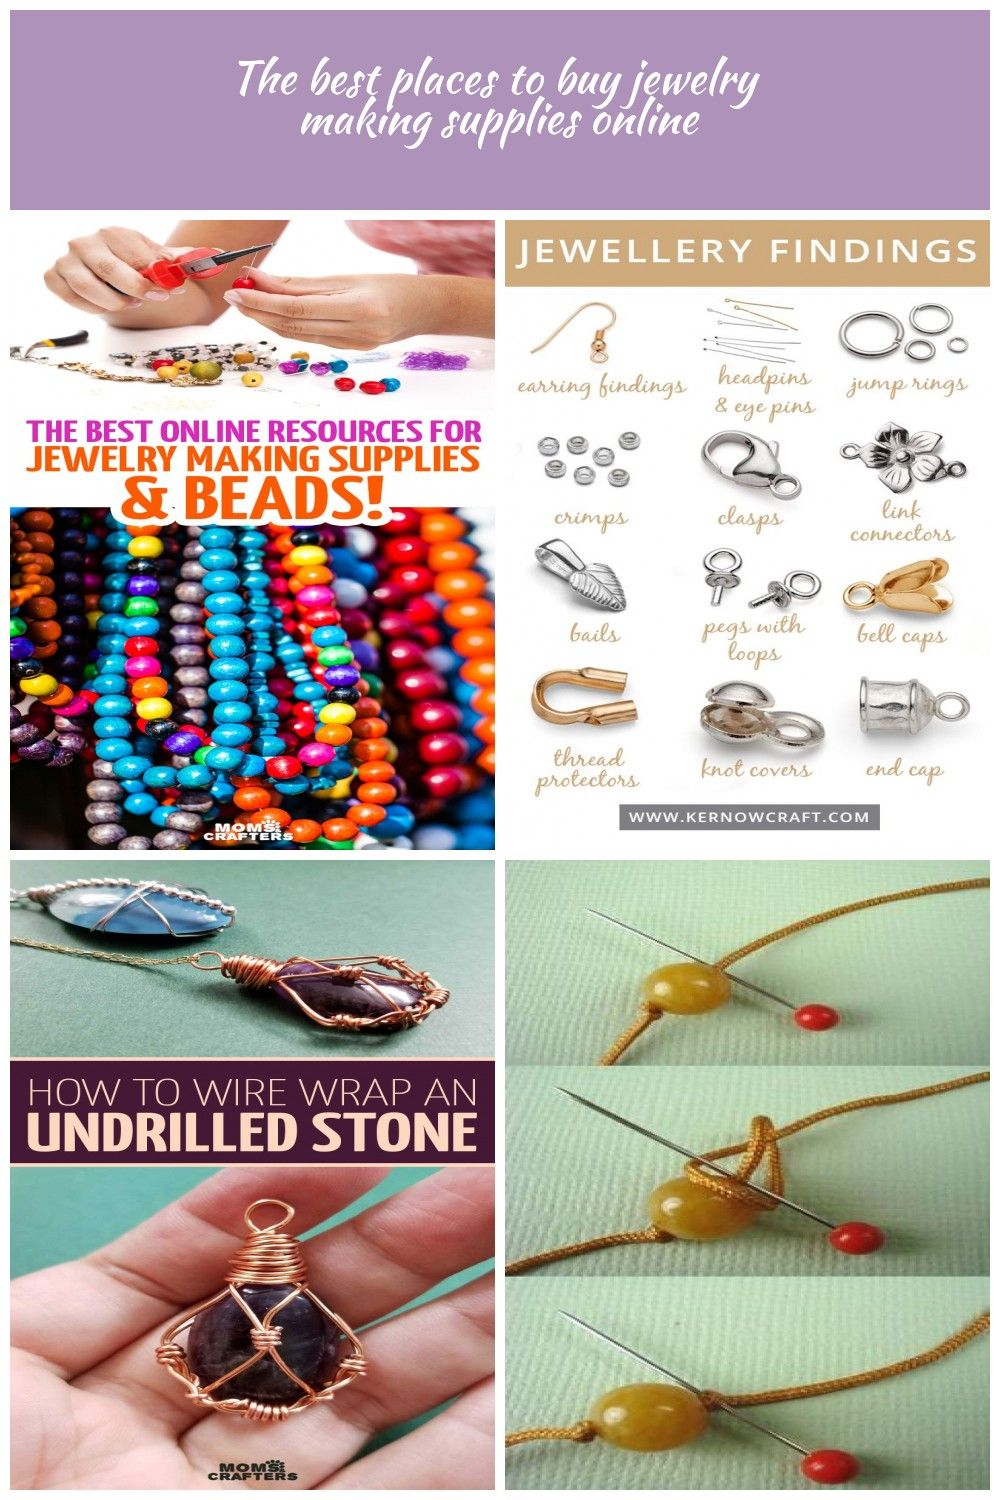 20++ Best places to buy jewelry making supplies viral